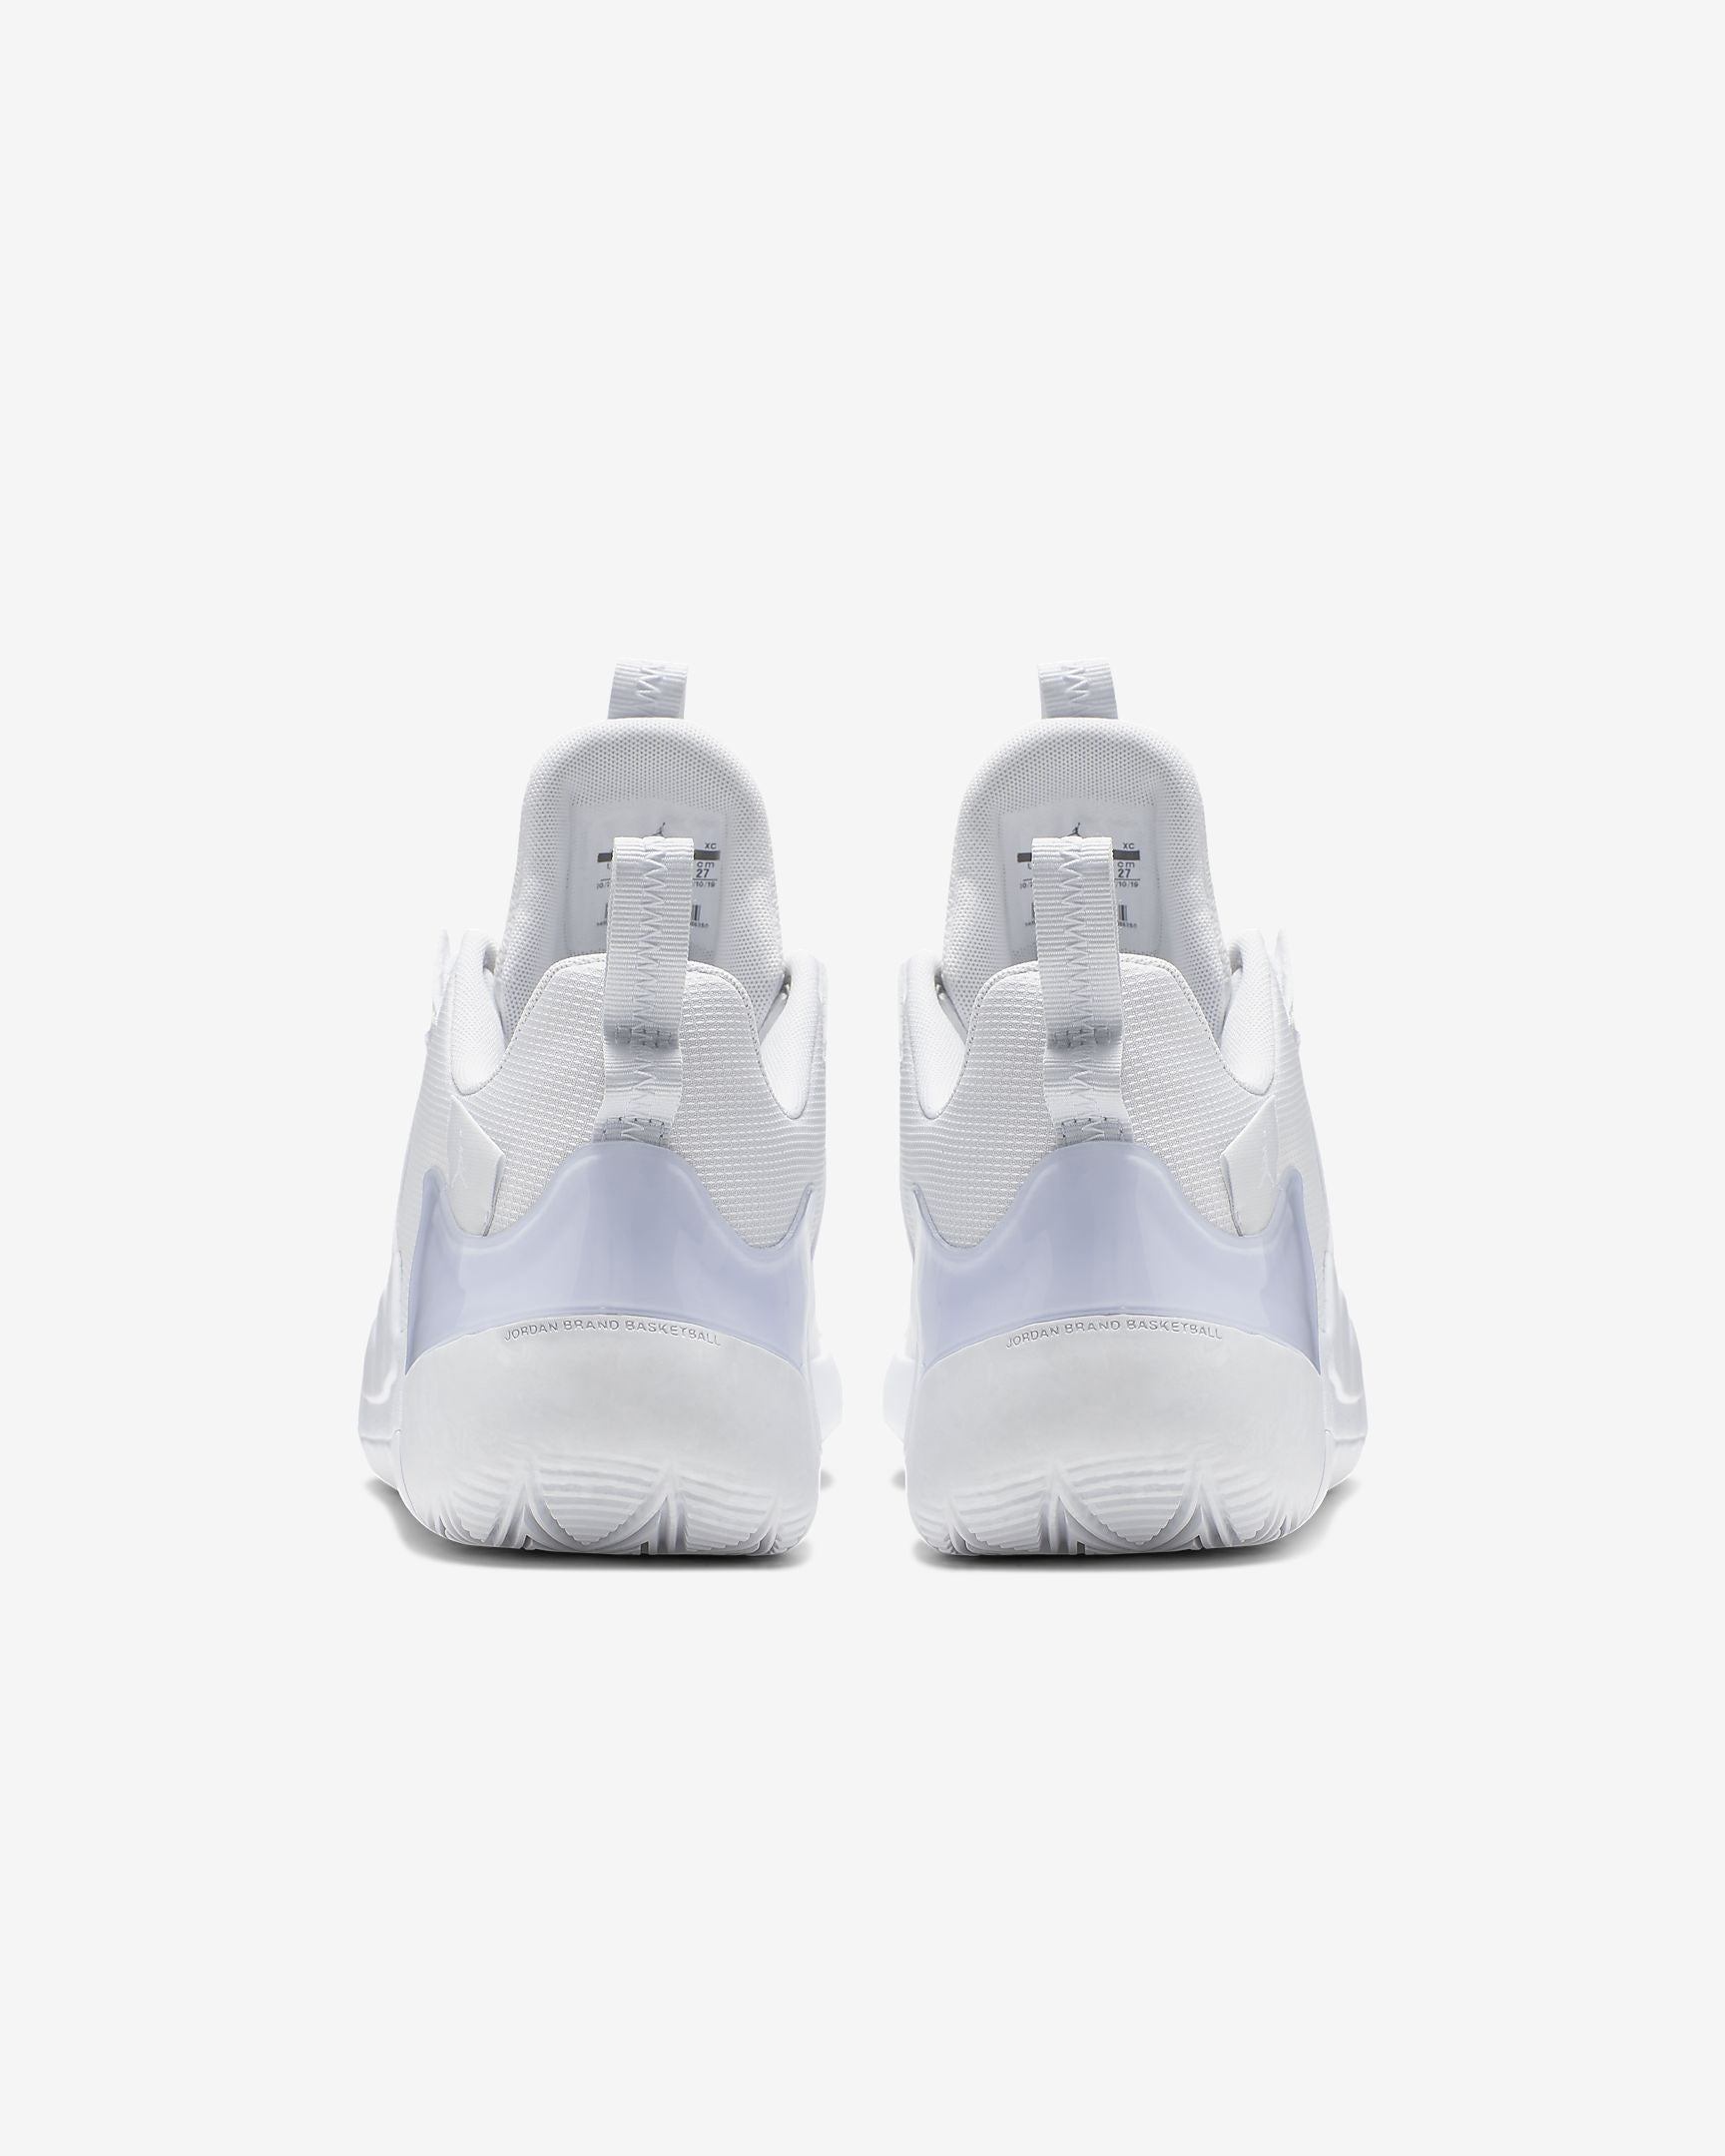 Nike Jordan Zoom Zero Gravity Basketball Boot/Shoe - White/Pure Platinum